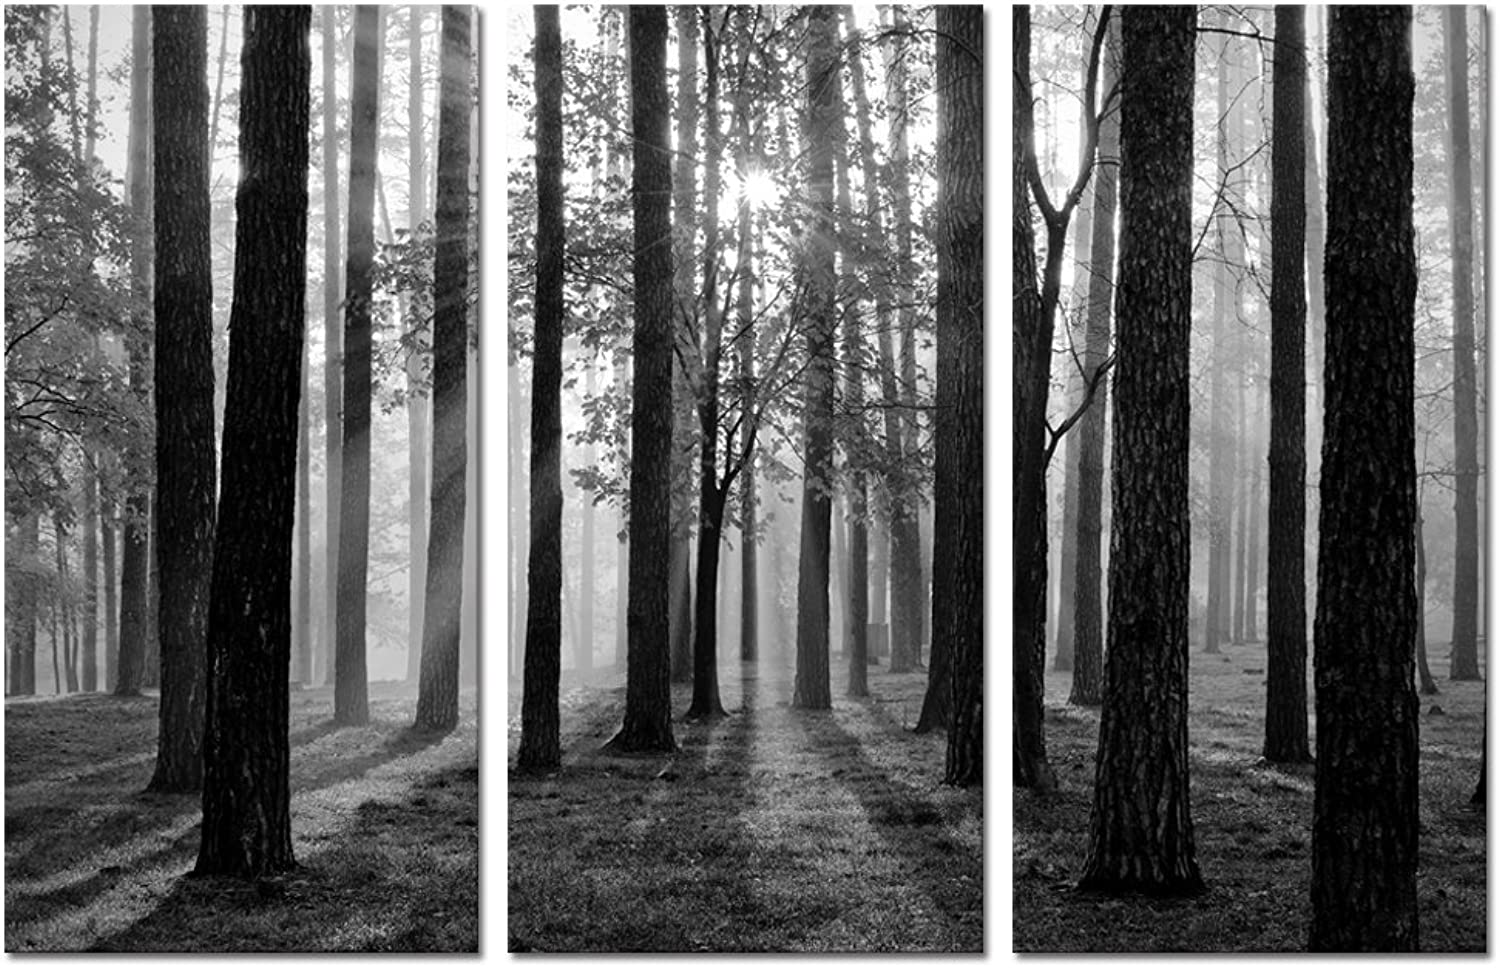 Black and White Landscape Canvas Wall Art,Modern Wall Art,Nature Picture Art,Canvas Prints,Oil Painting,Autumn Forest Wall Decor,Wall Decoration (Foggy Forest)